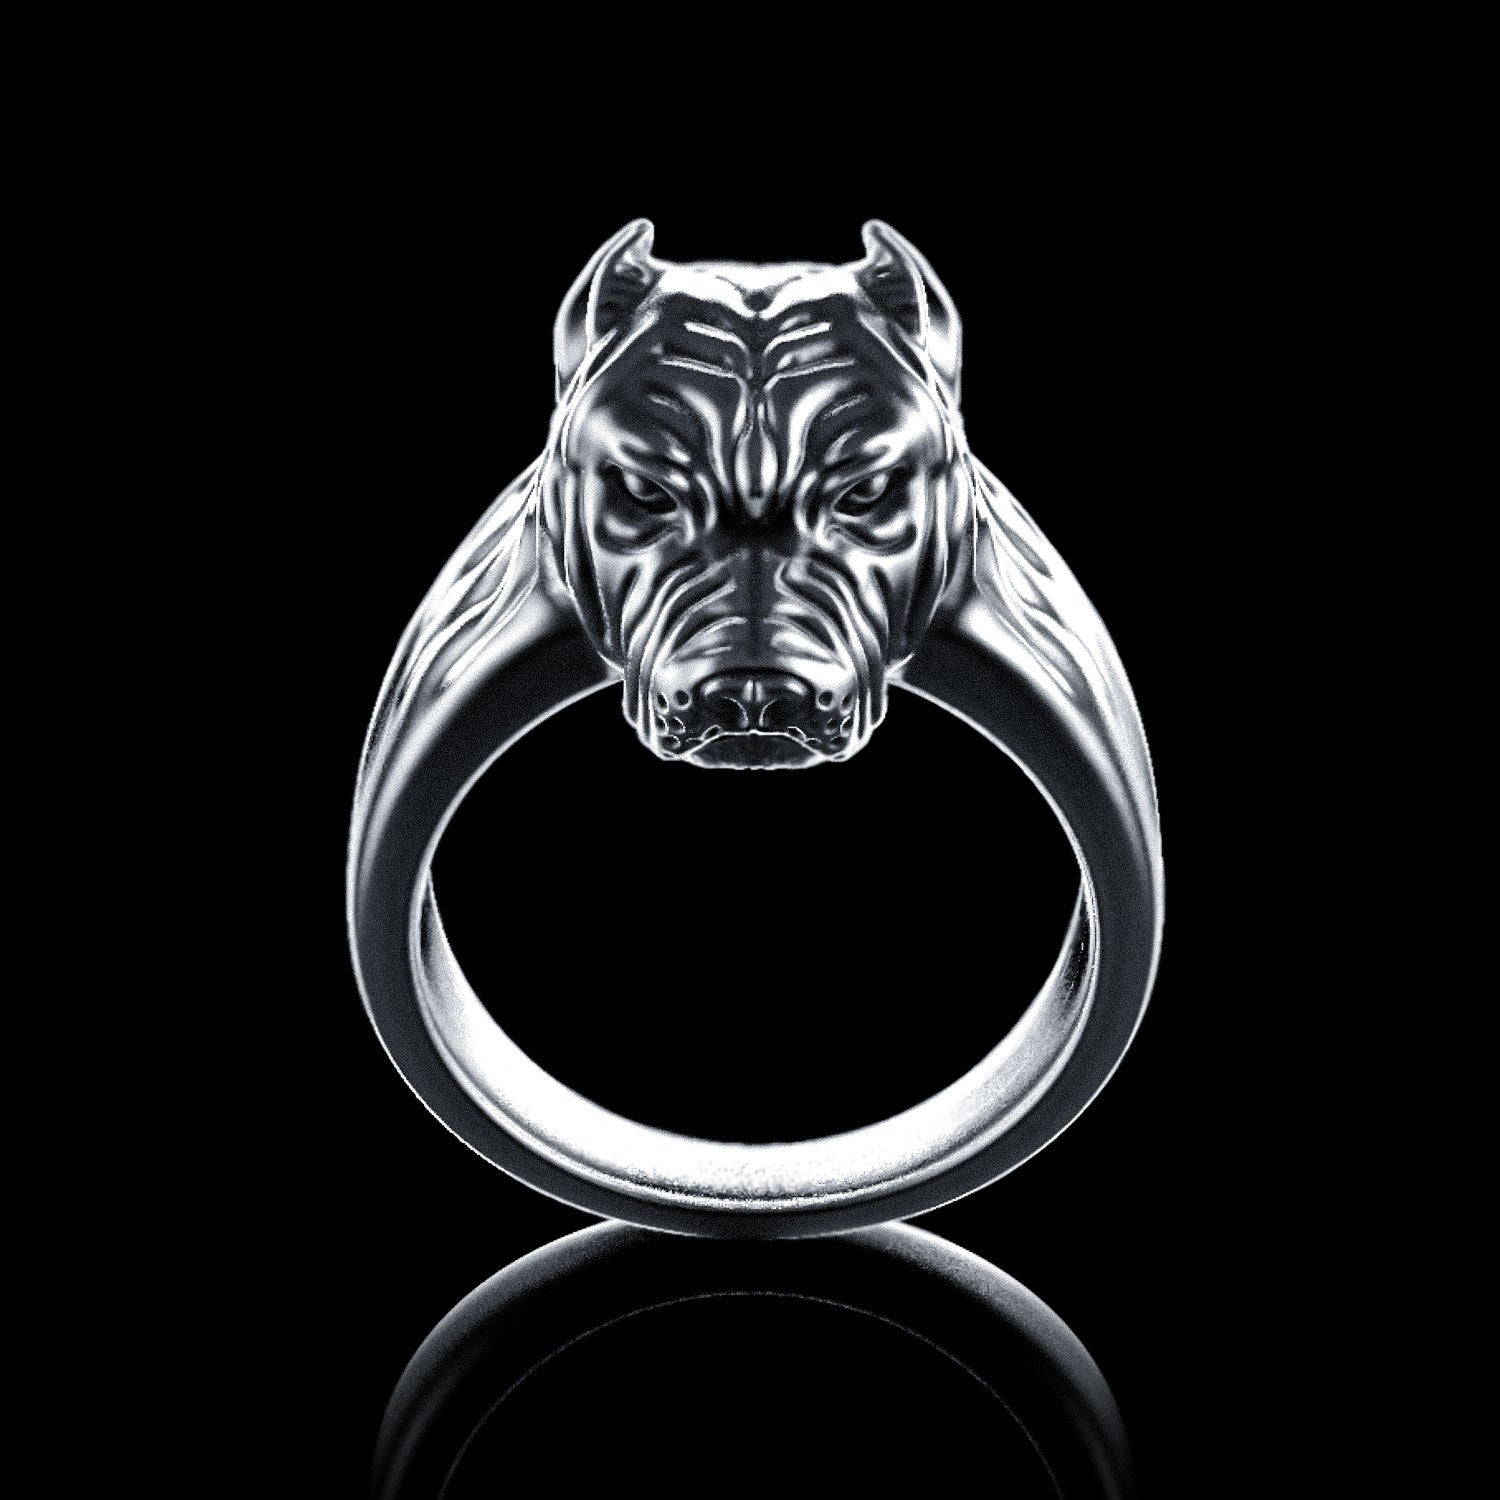 Pitbull Ring - LIMITED EDITION